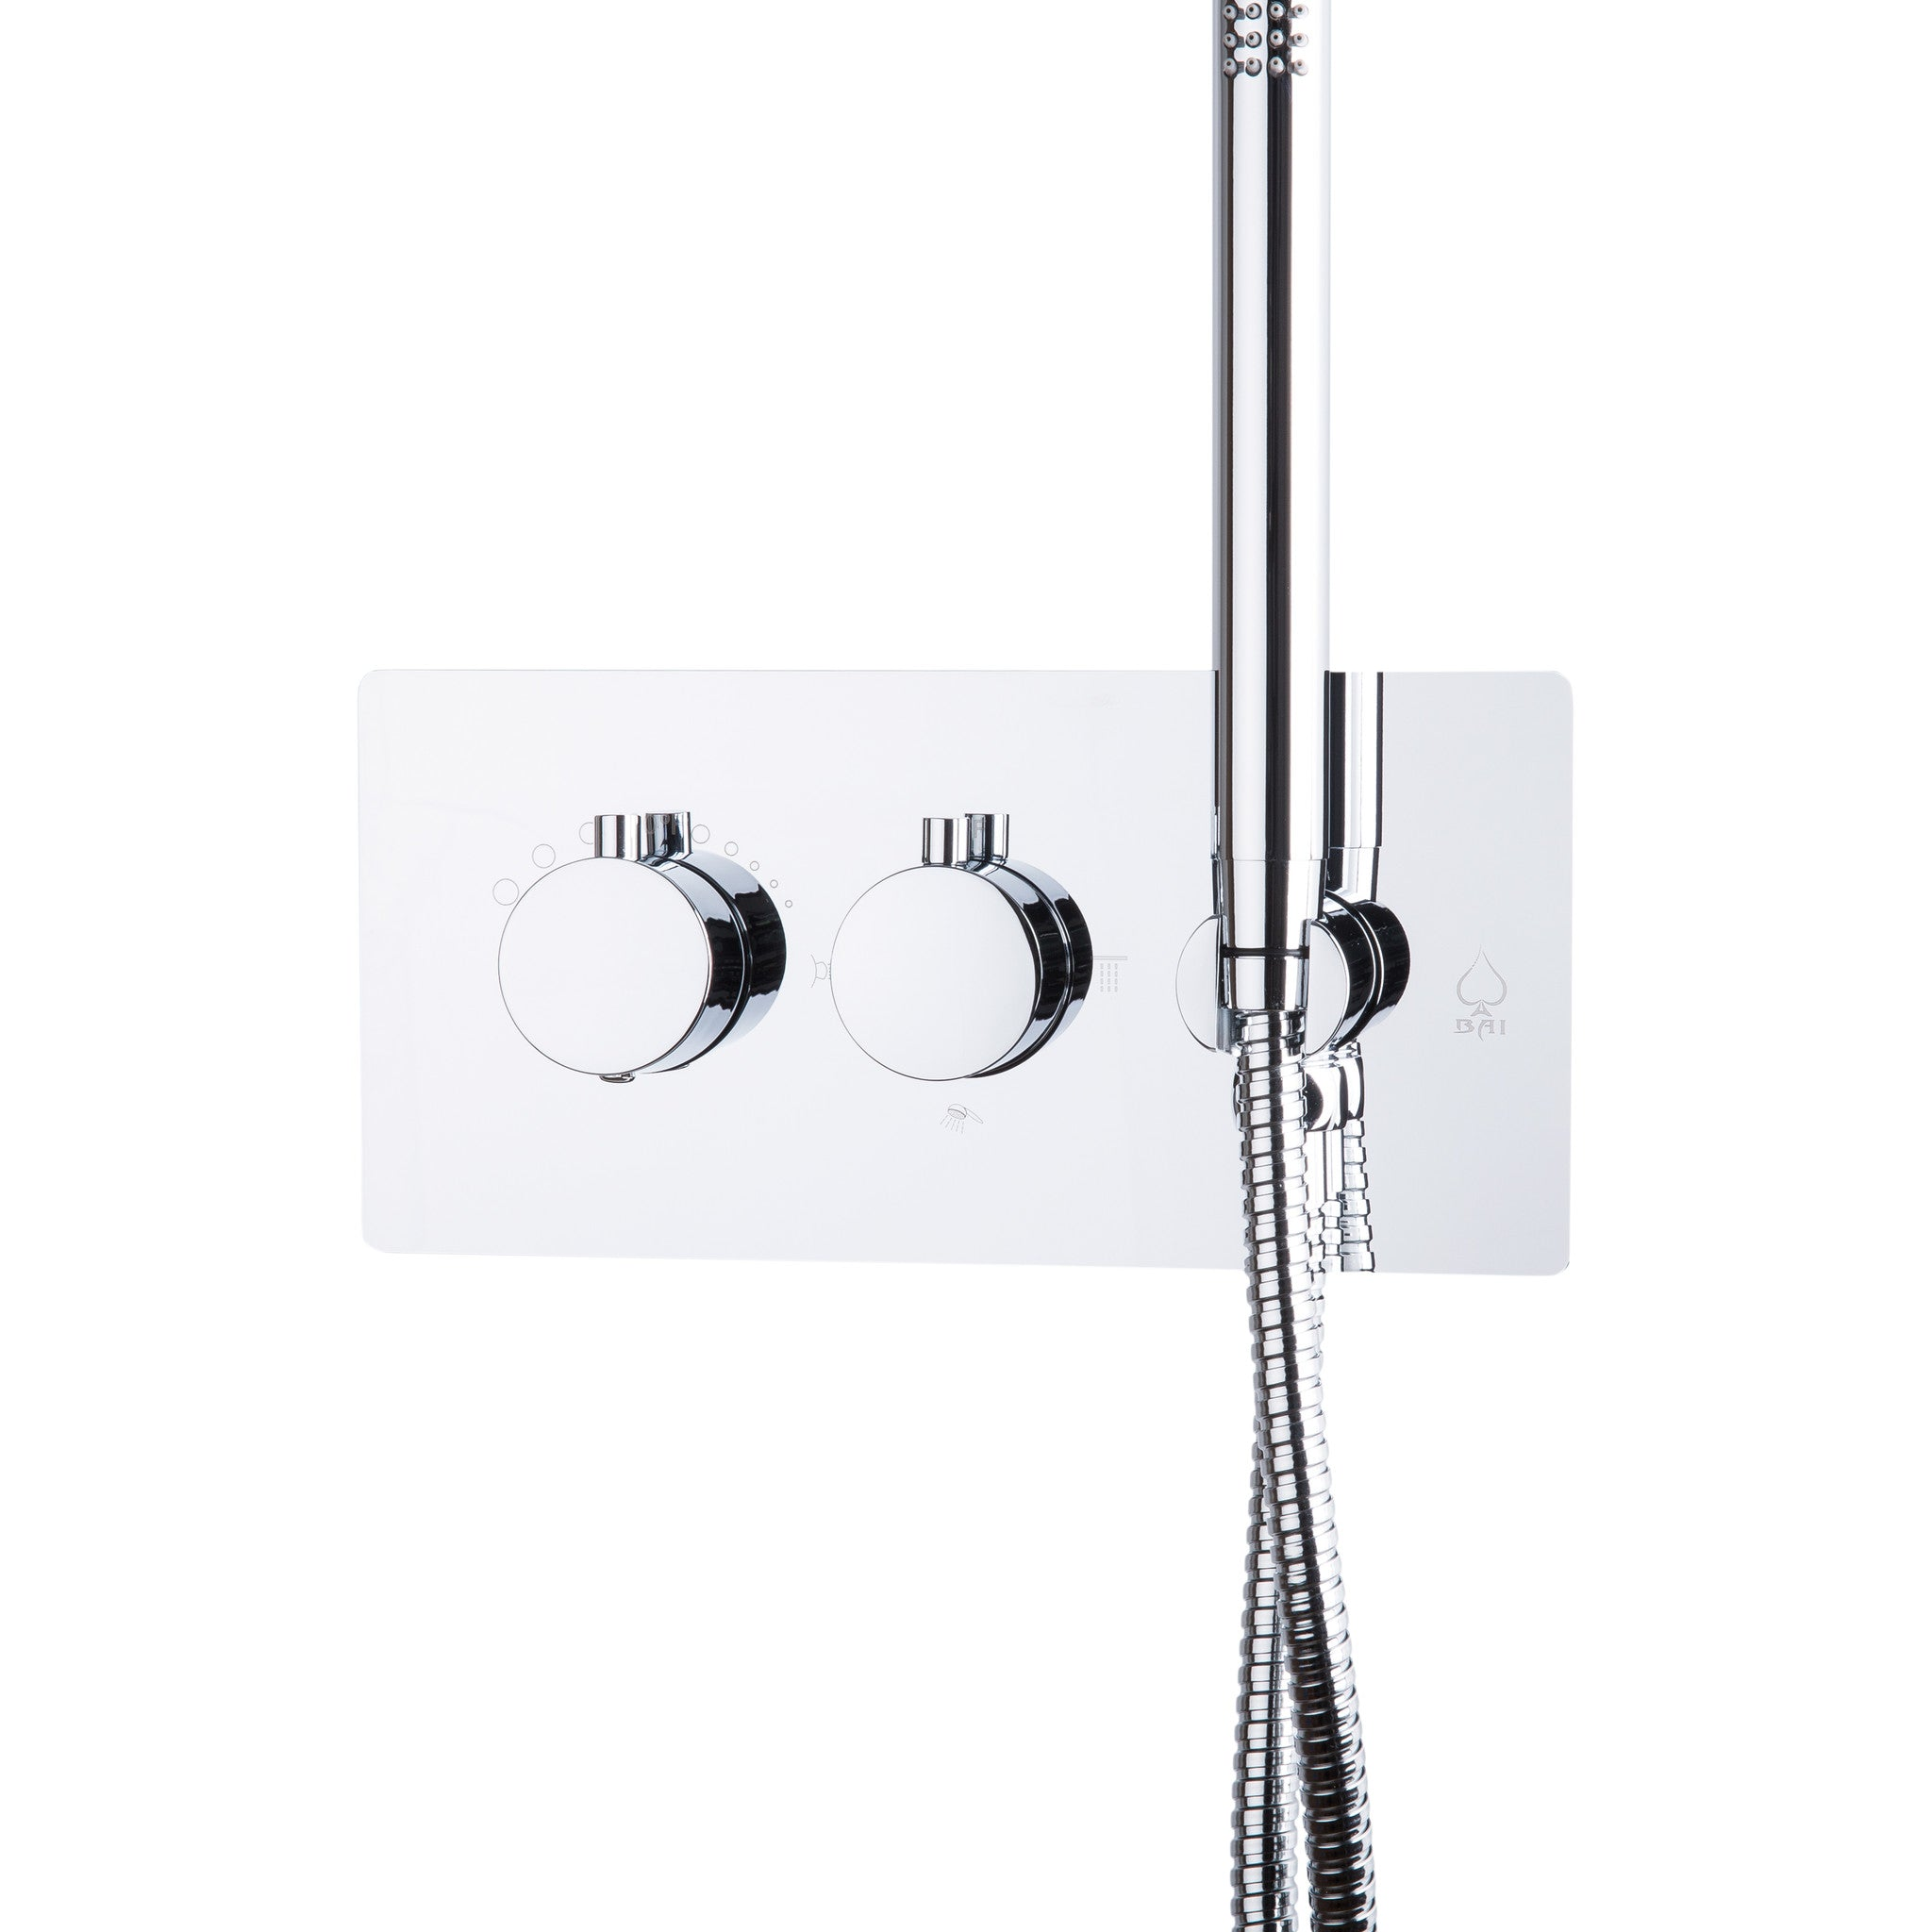 bai concealed stainless steel shower mixer valve with handheld wand 23 - Shower Knobs